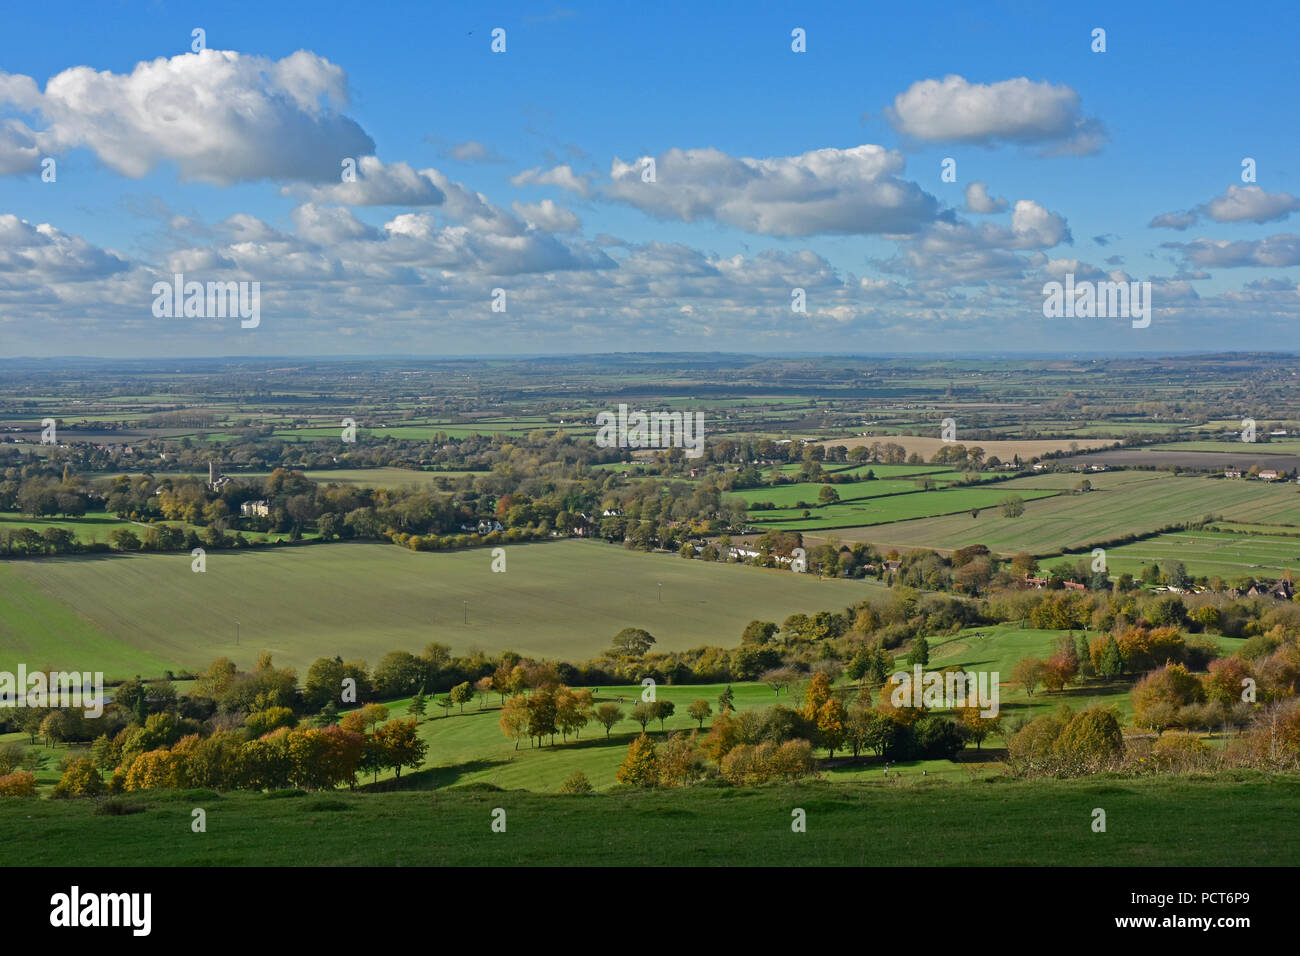 Bucks - Chiltern Hills - view from Coombe Hill over the Aylesbury Plain - sunlight - early autumn colours - cloud flecked blue sky - Stock Image